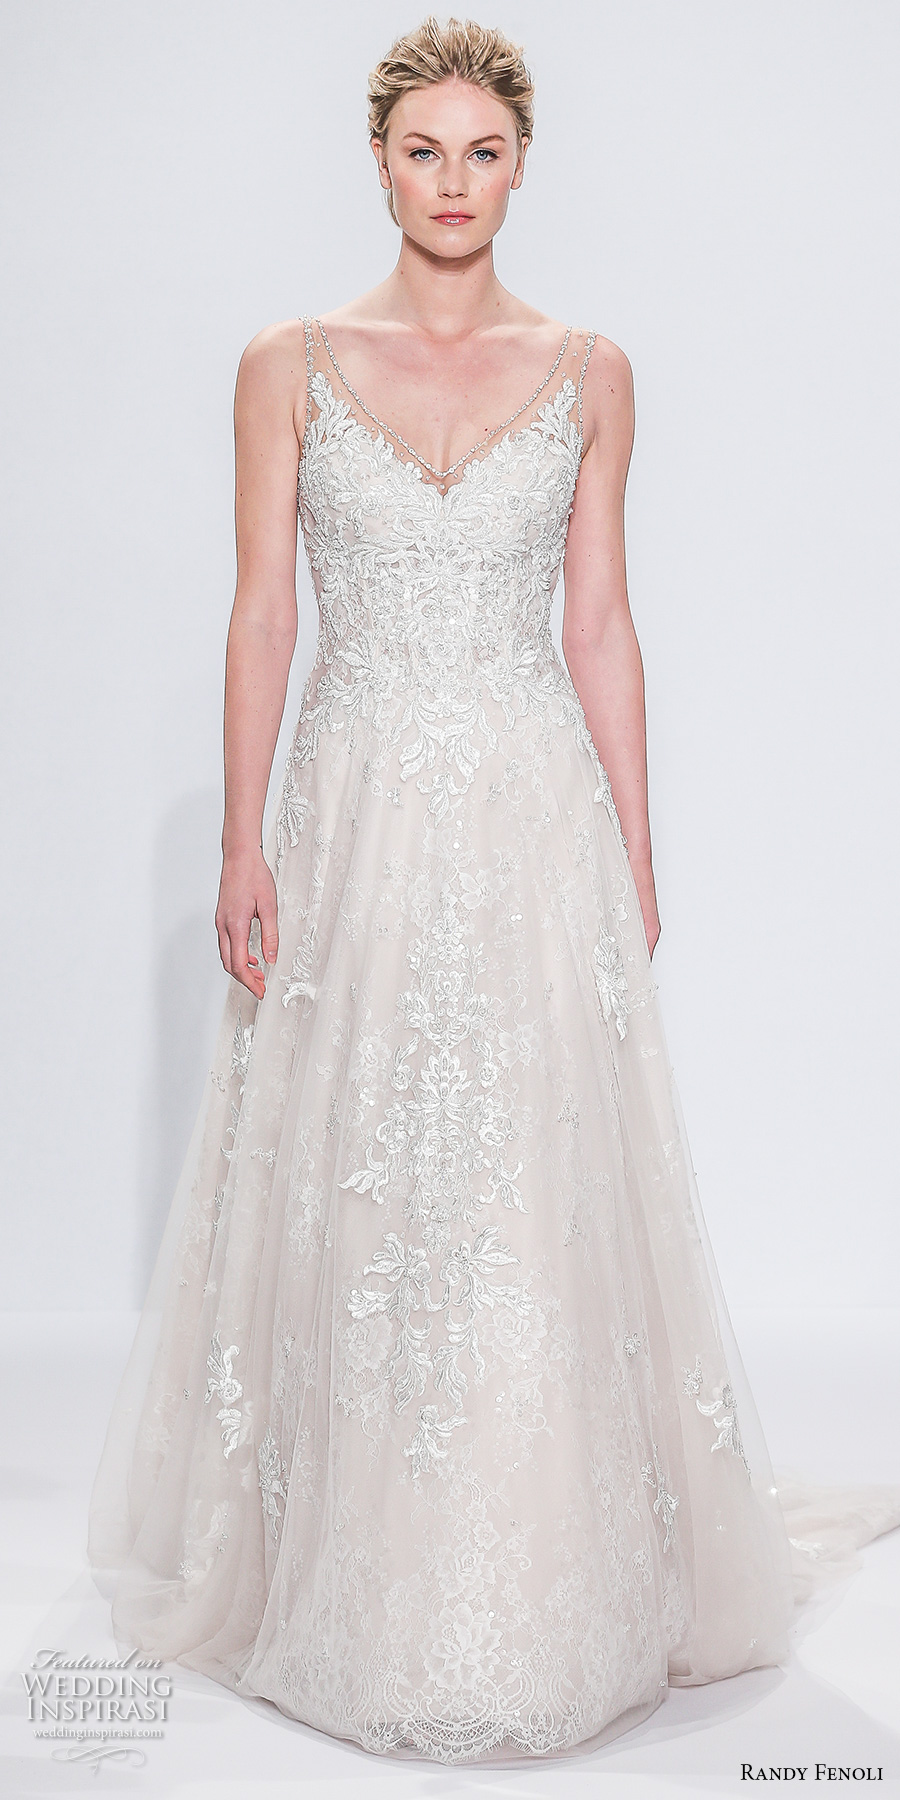 randy fenoli spring 2018 bridal sleeveless sheer strap v neck heavily embellished bodice tulle skirt elegant romantic a  line wedding dress open v back sweep train (11) mv